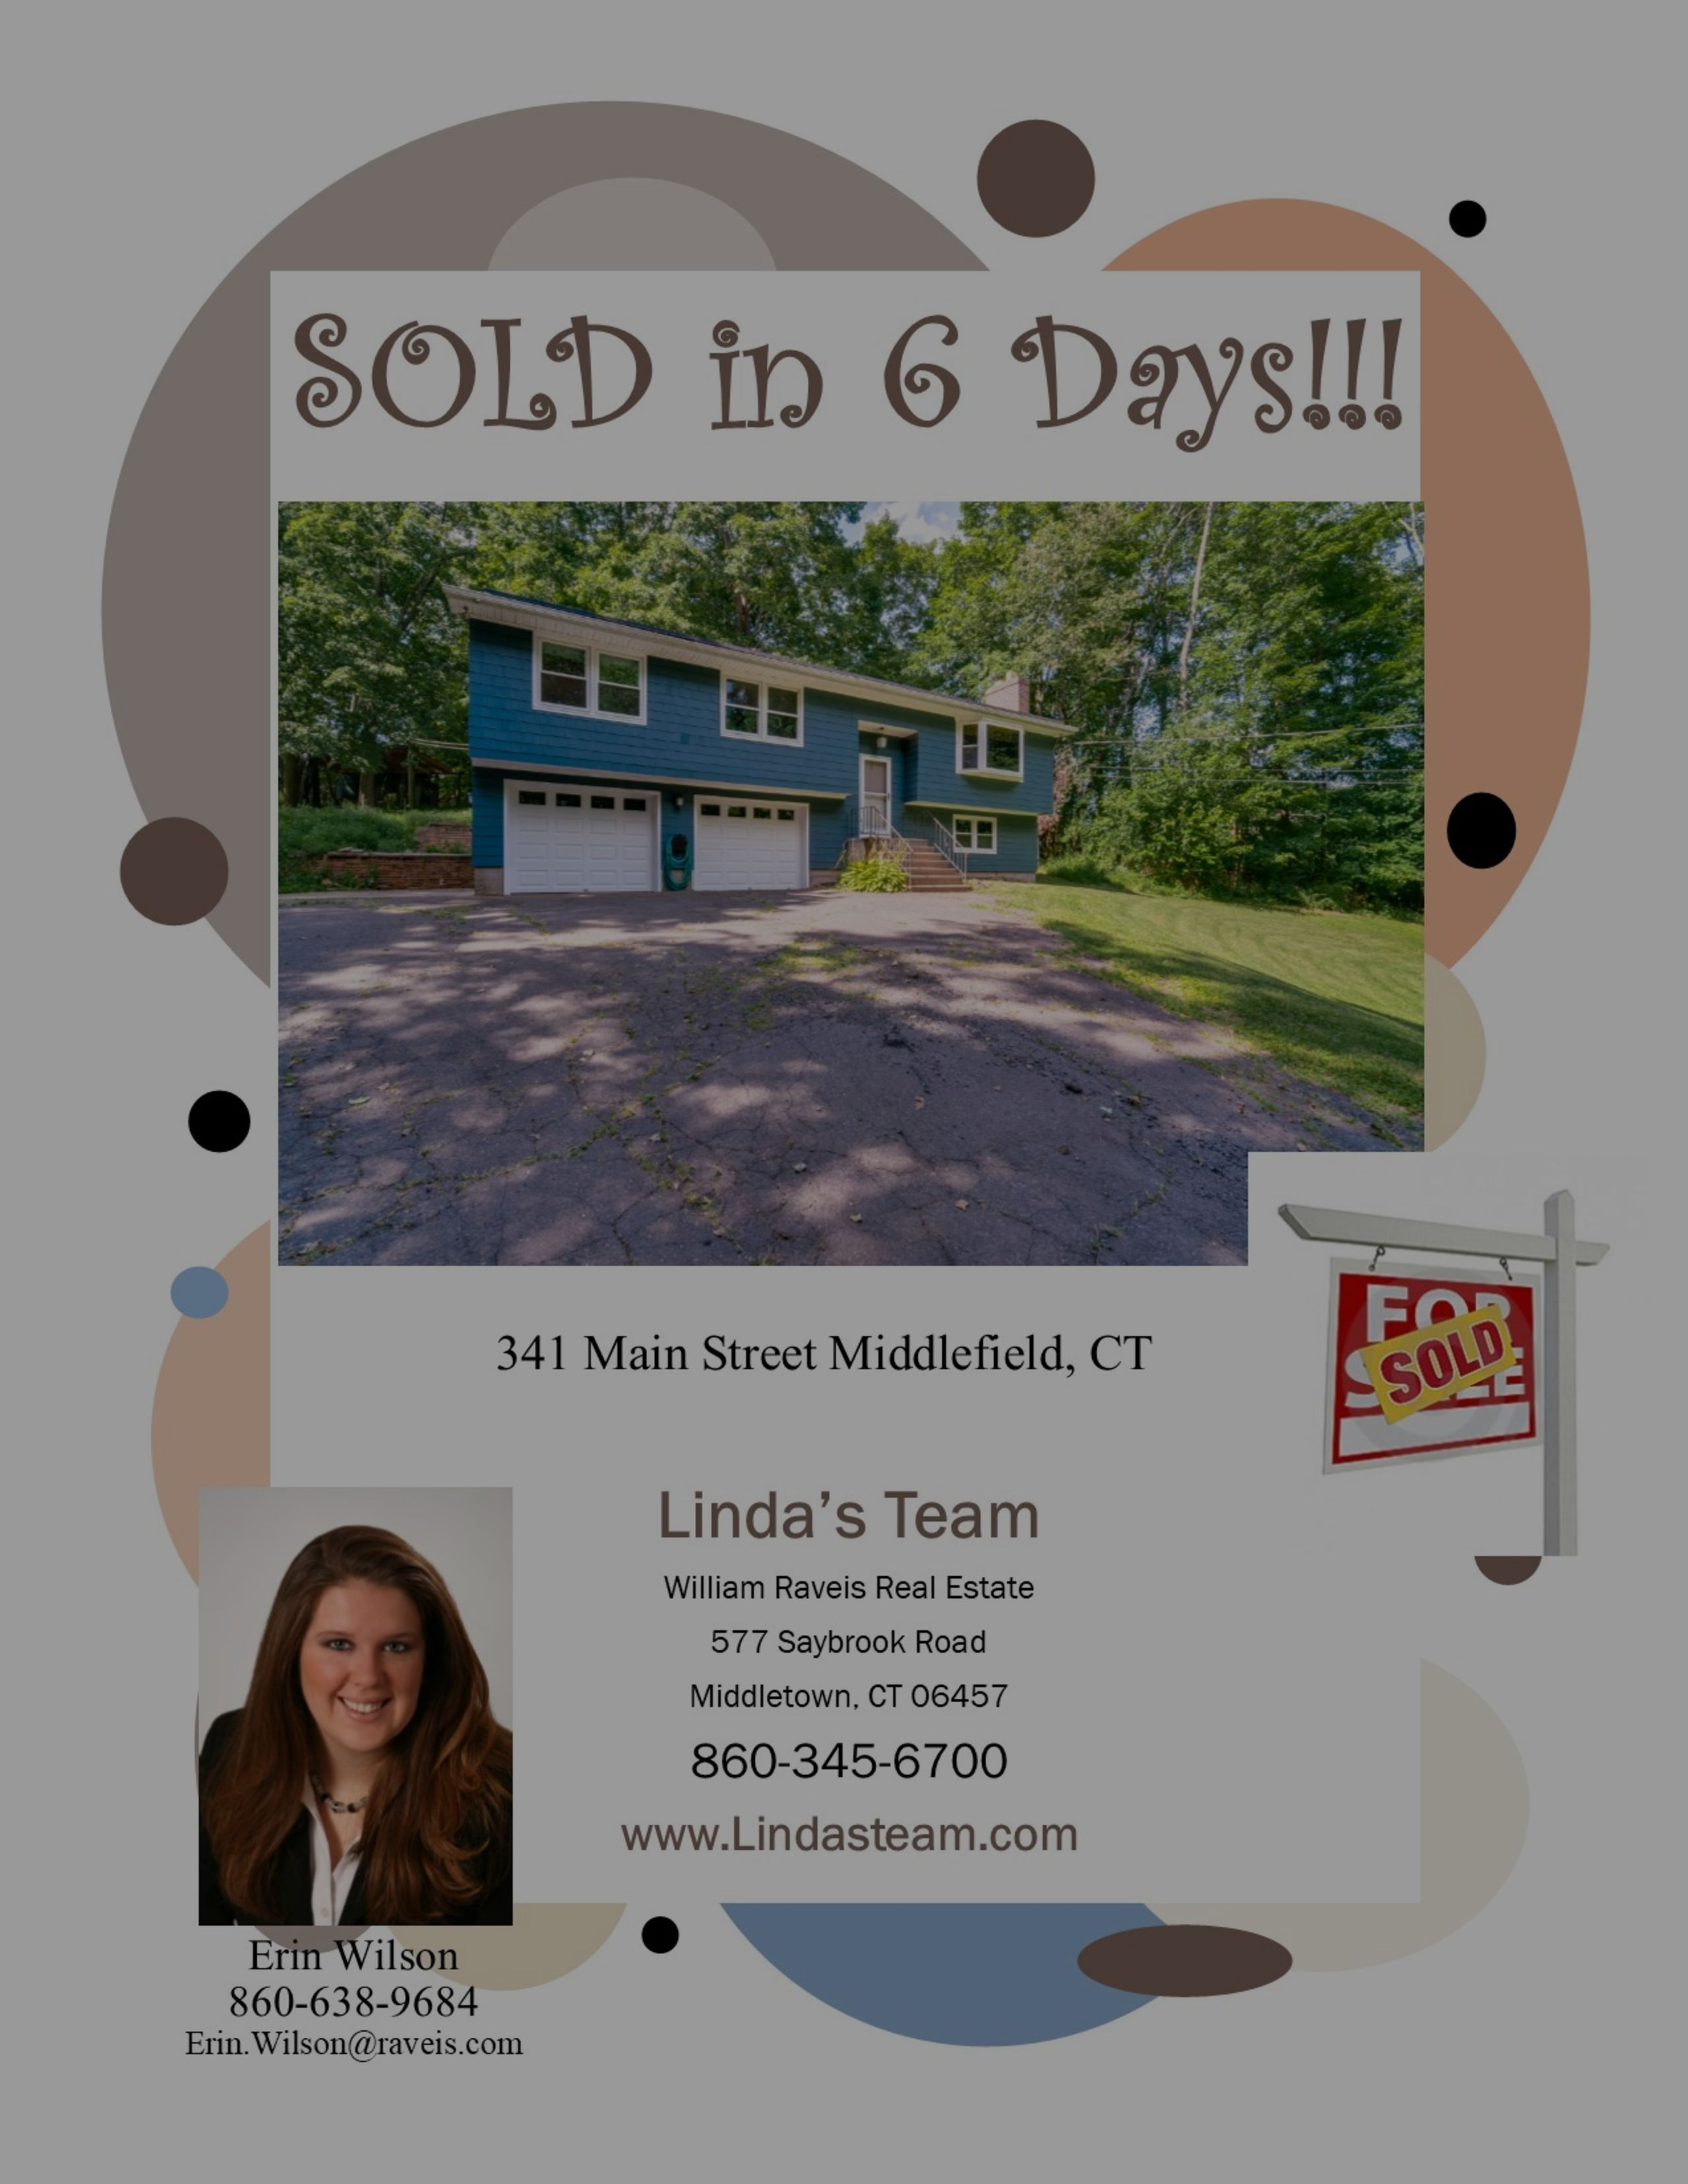 SOLD in 6 Days in Middlefield!